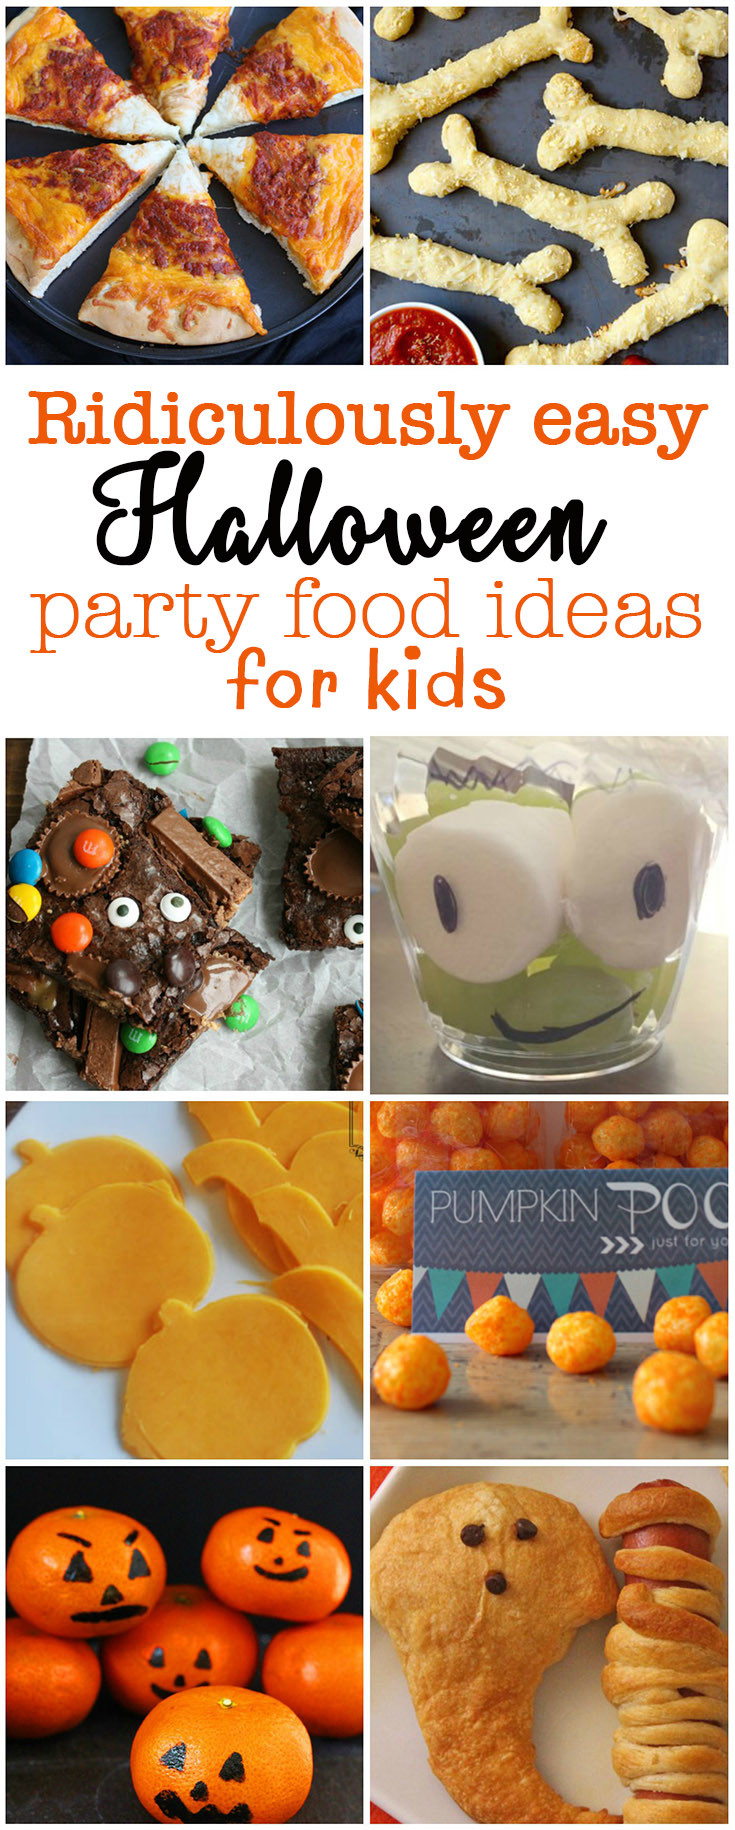 Halloween Food Ideas For Kids Party  Ridiculously easy Halloween party food for kids Eat